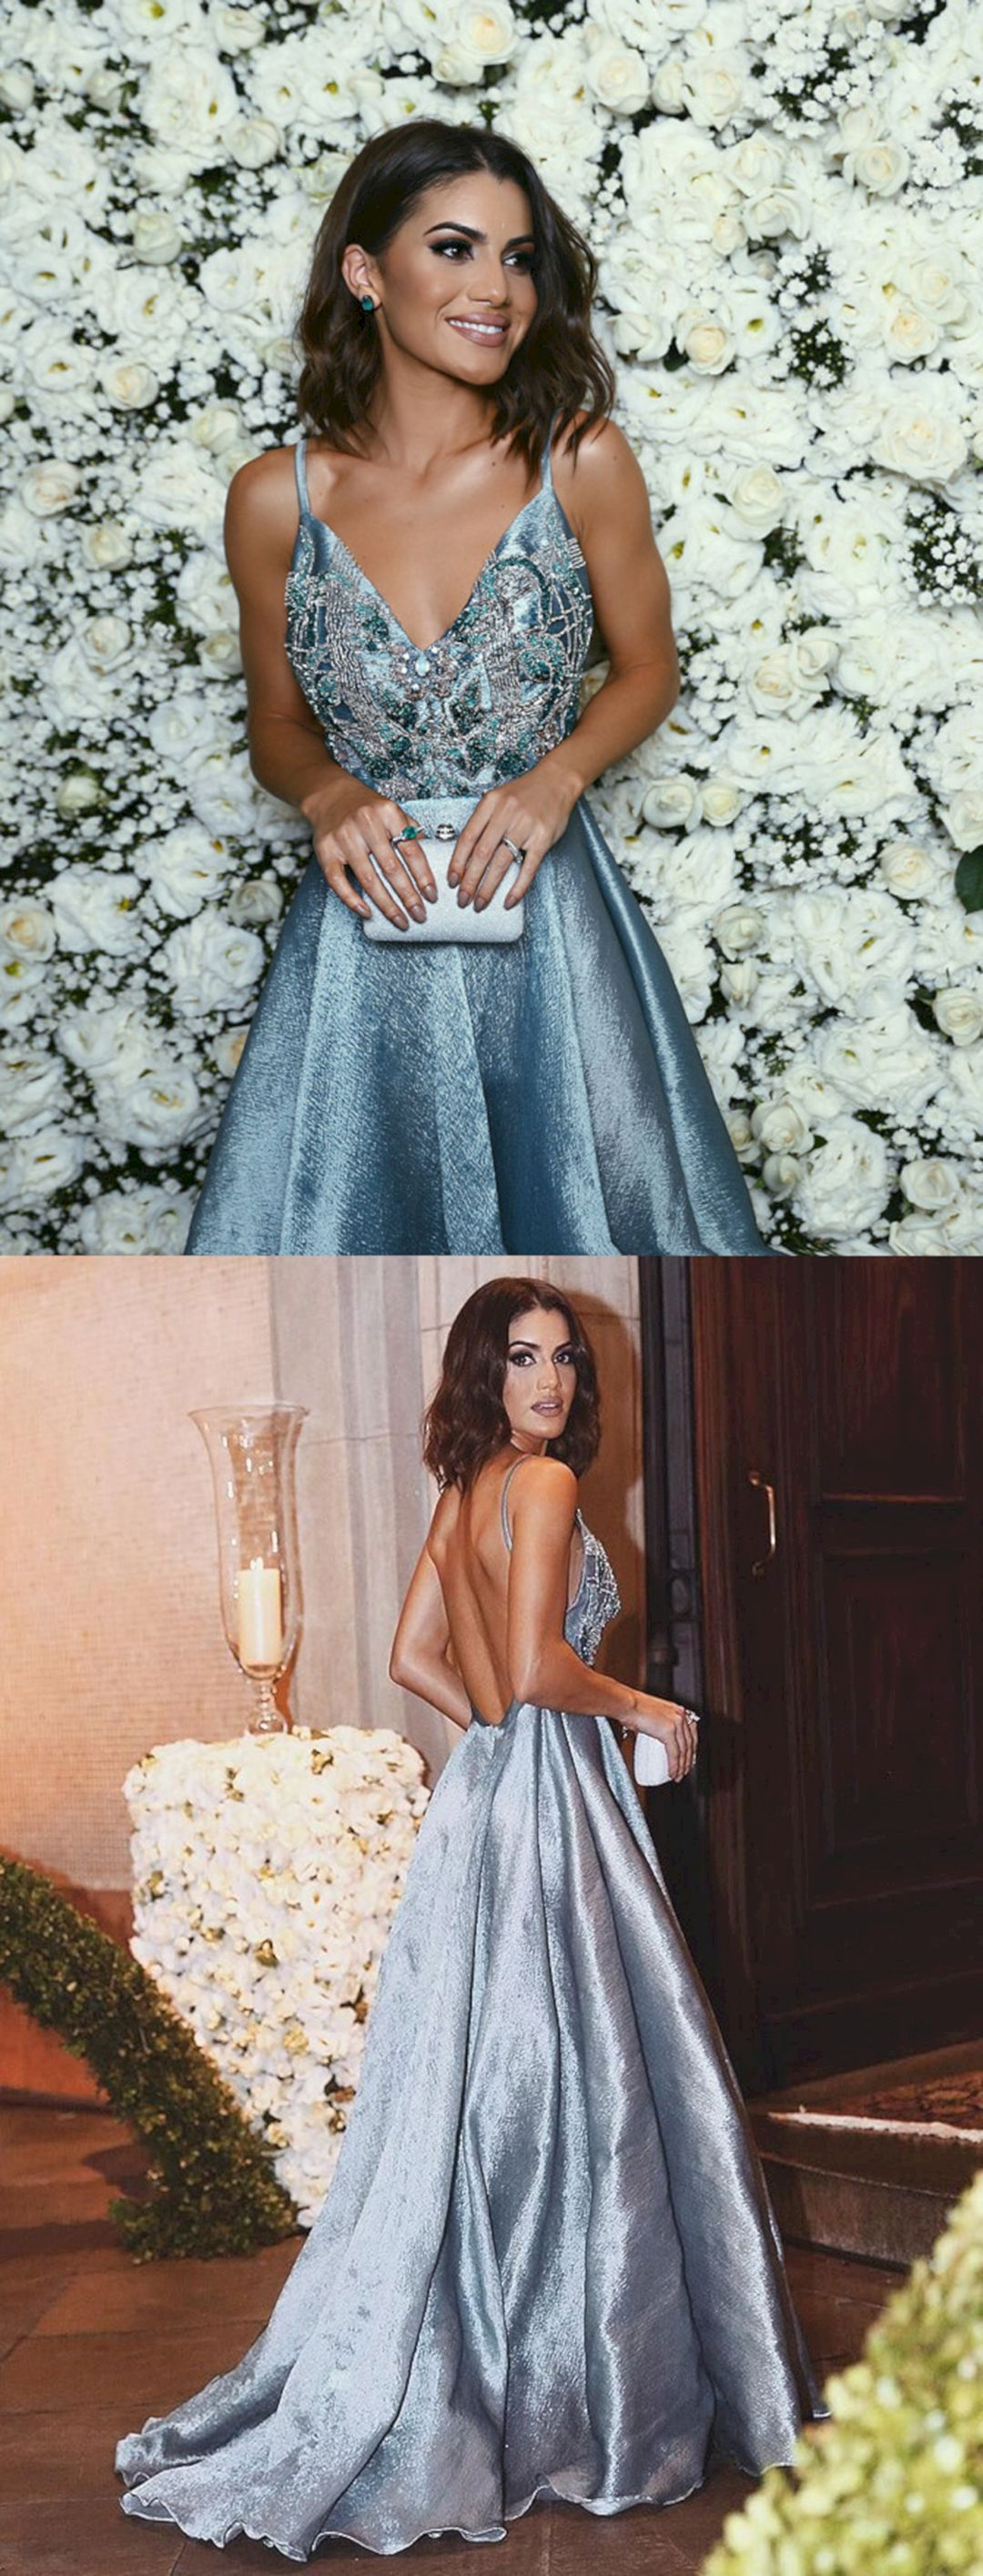 Awesome Prom Dresses